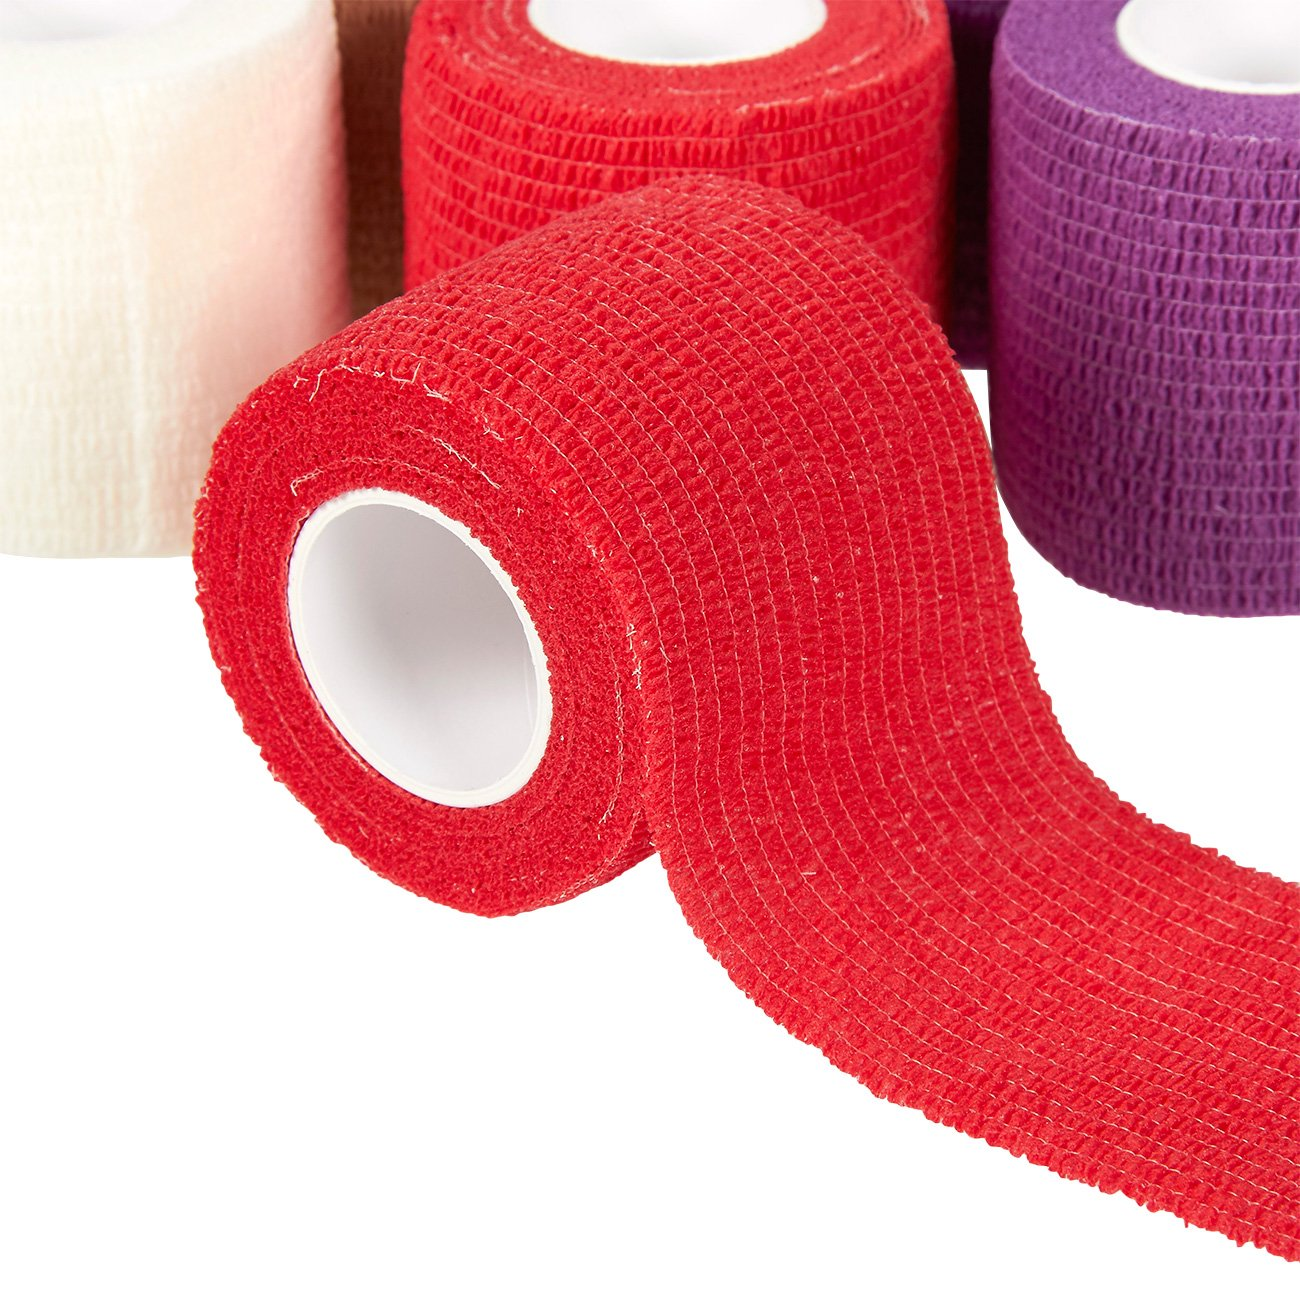 Juvale Pack of 12 Vet Wraps - Gauze Rolls - Cohesive Bandage - Bandage Wrap for Animals, Assorted Colors, 2 Inches x 66.9 Inches by Juvale (Image #5)